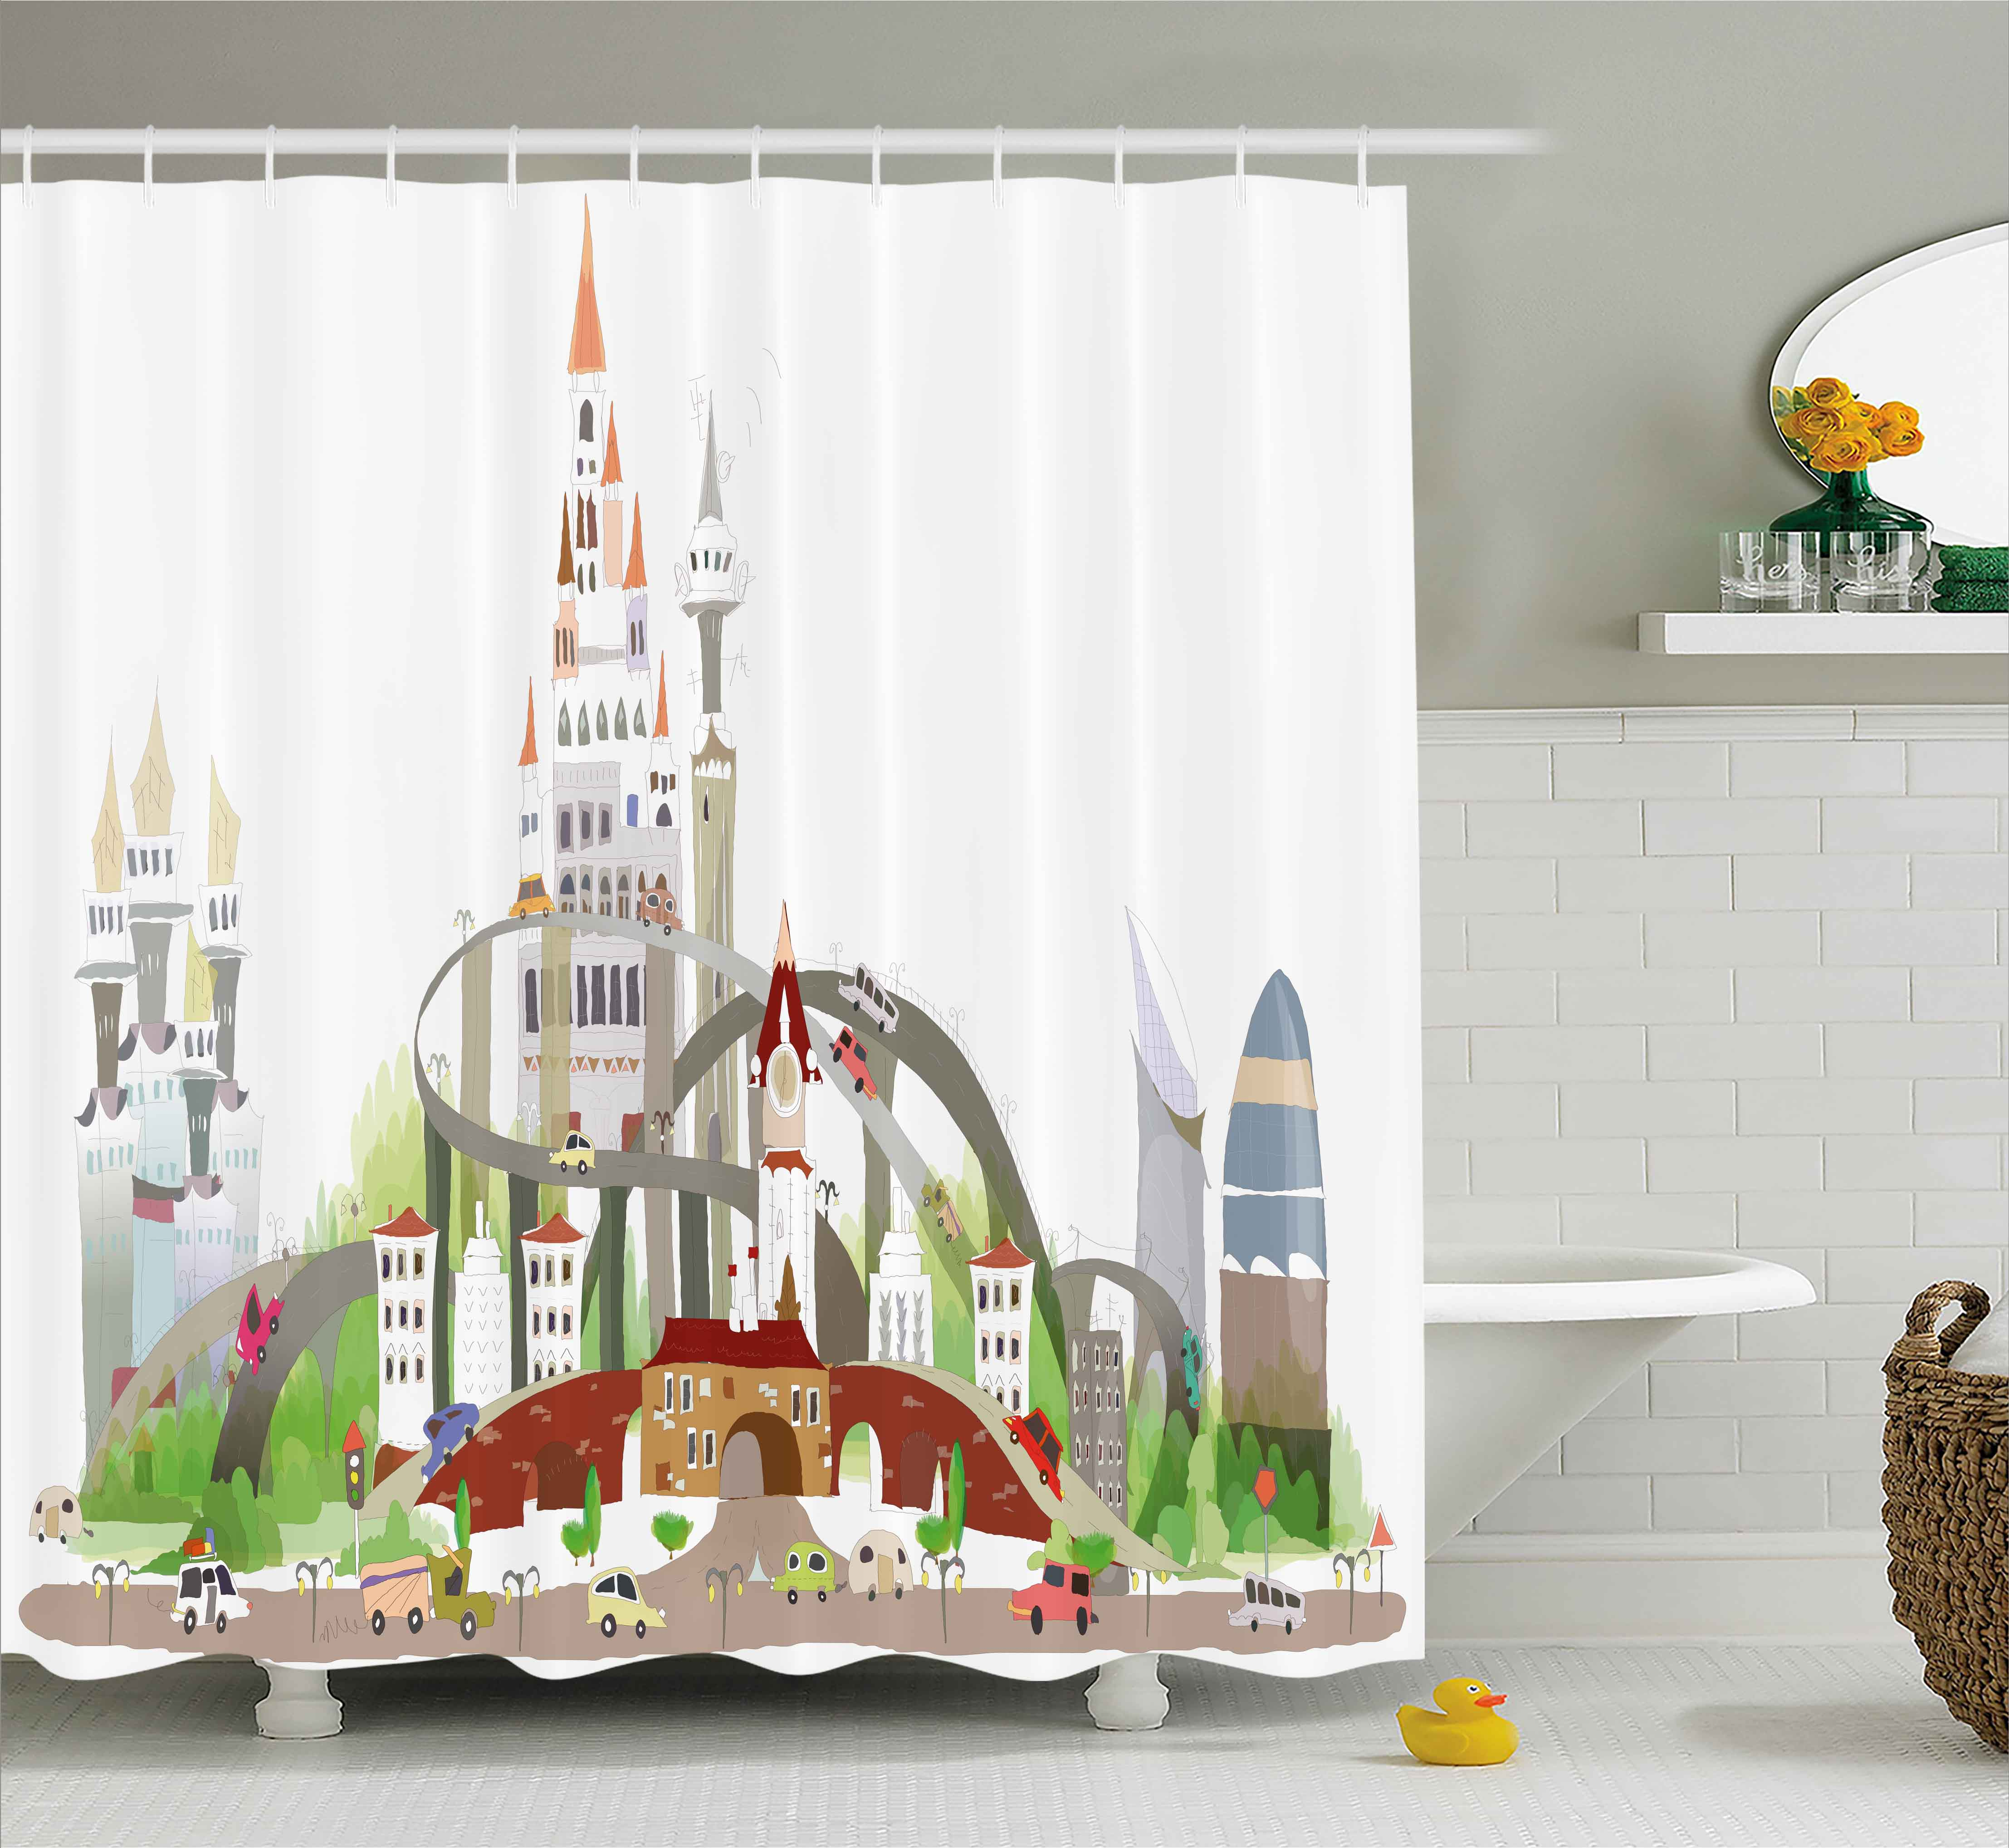 Fantasy Shower Curtain, Mega City Urban Scenery with Medieval Castle Style Skyscrapers City Illustration, Fabric Bathroom Set with Hooks, 69W X 75L Inches Long, Multicolor, by Ambesonne